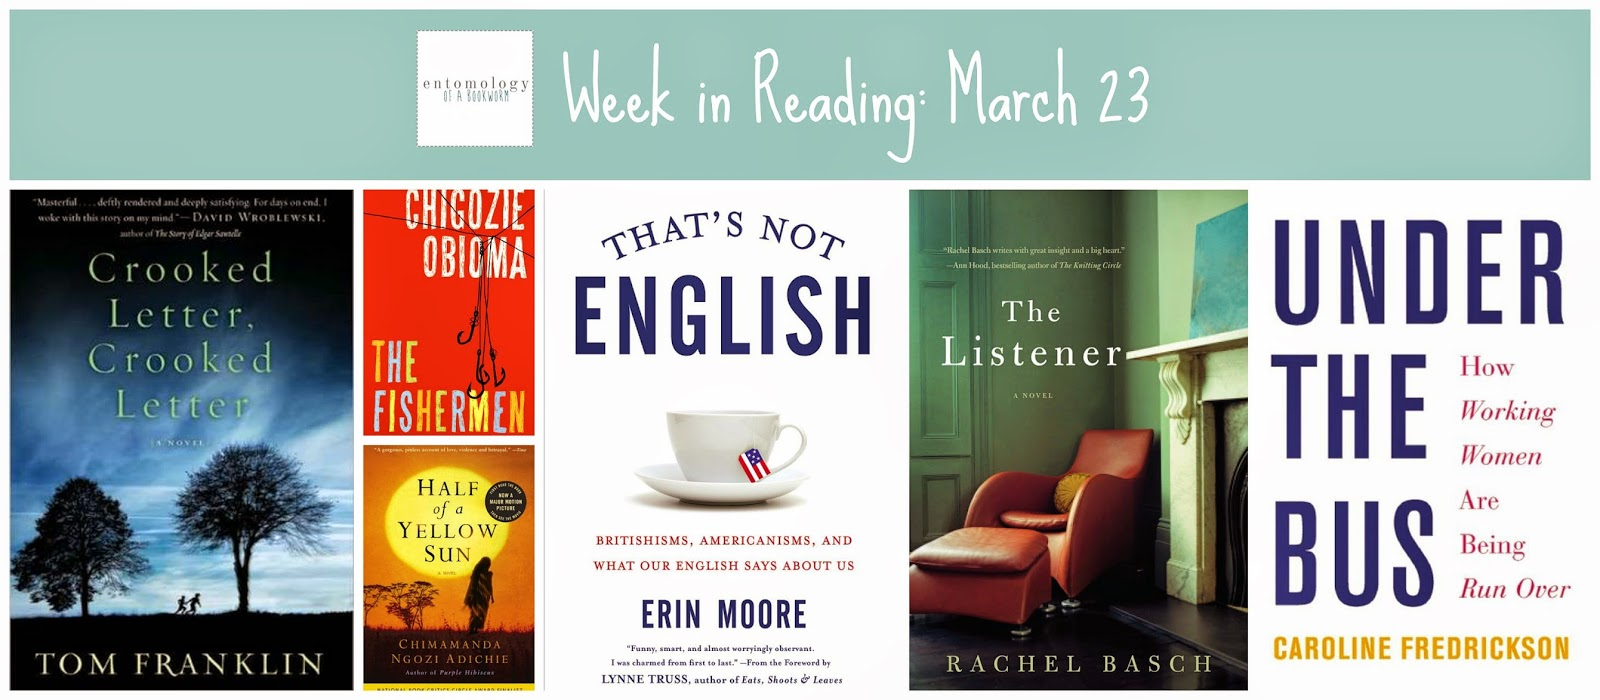 entomology of a bookworm this week in reading: crooked letter, crooked letter by tom franklin; the fishermen by chigozie obioma, half of a yellow sun by chimimanda adichie, that's not english by erin moore; the listener by rachel basch; under the bus by caroline frederickson